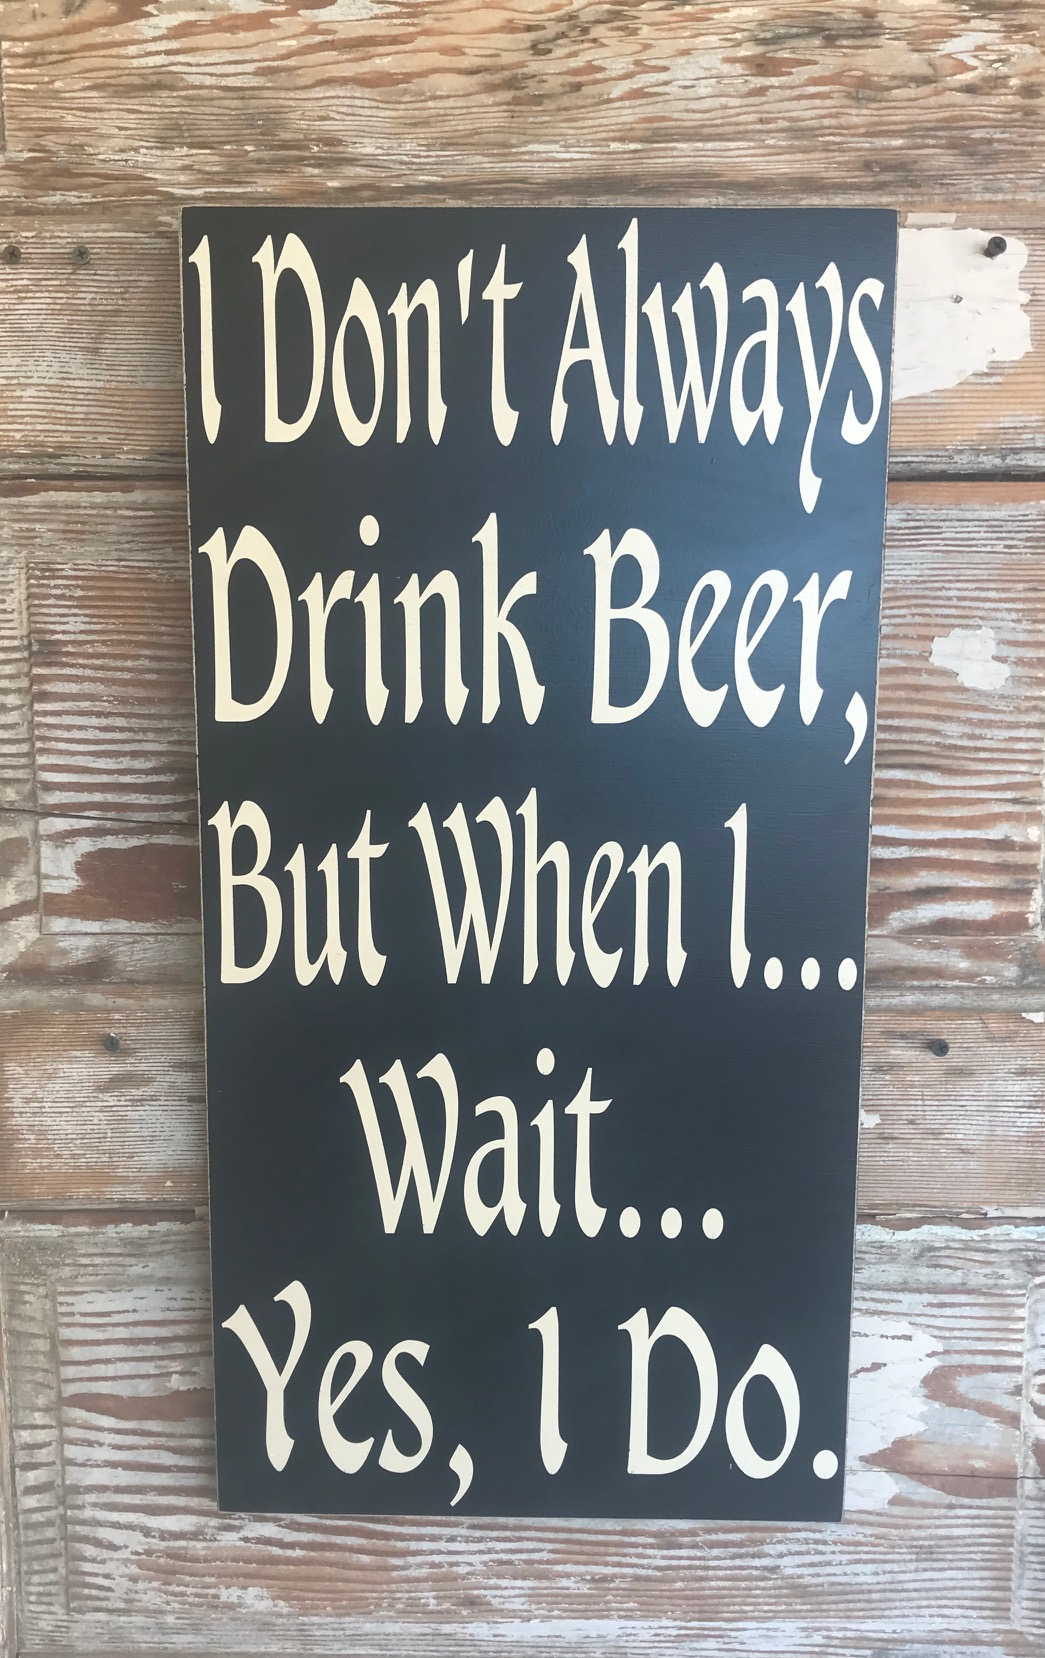 I Don't Always Drink Beer, But When I... Wait... Yes I Do.   Wood Sign